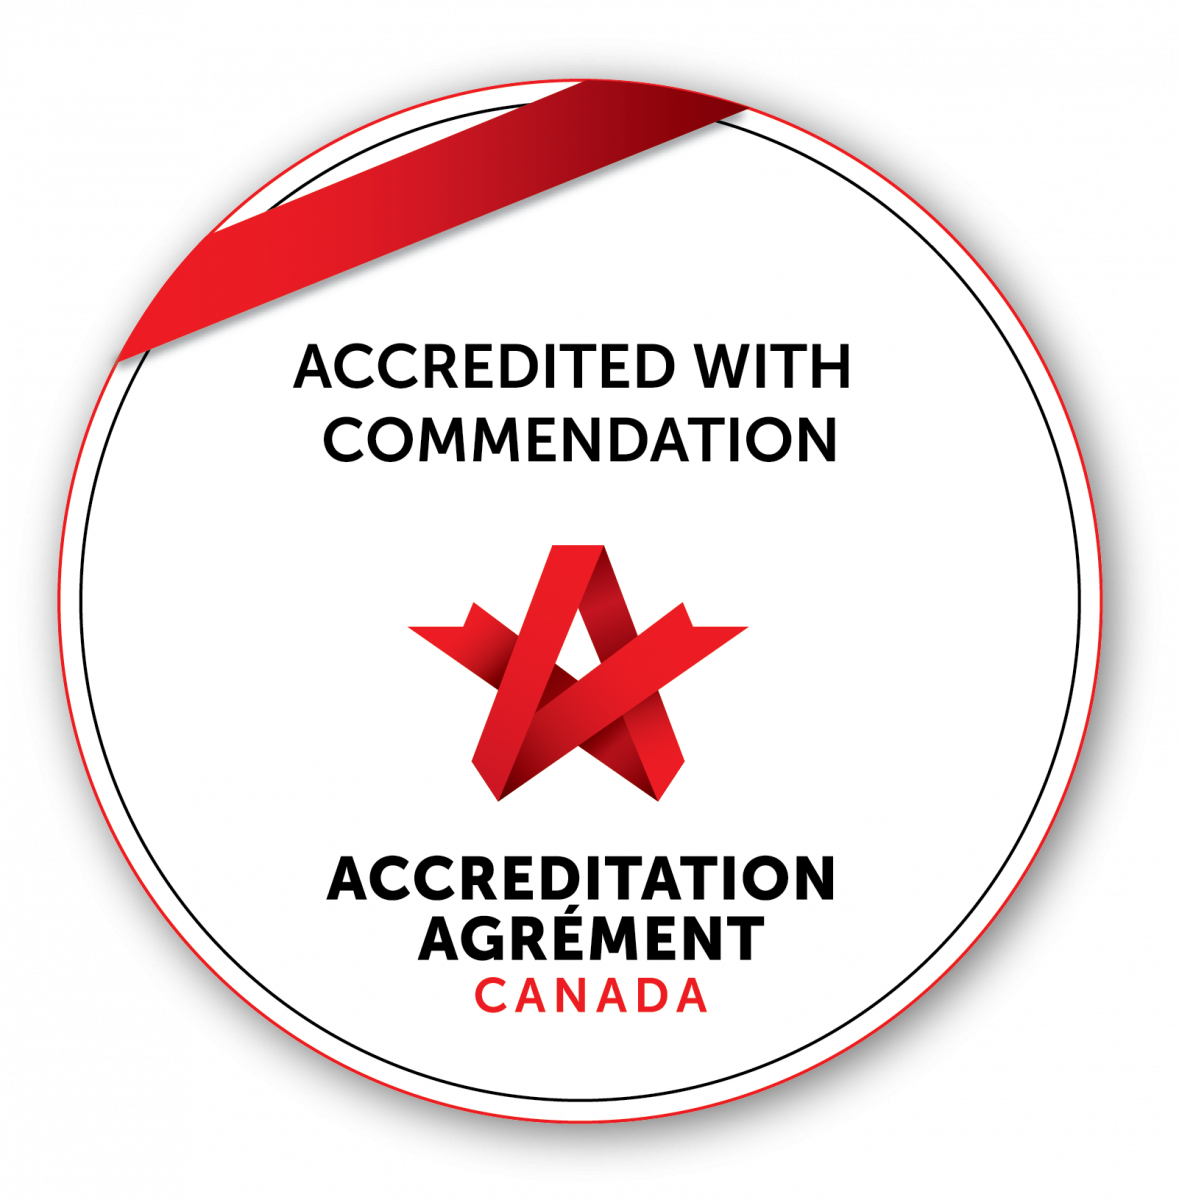 Image of the Accreditation Canada